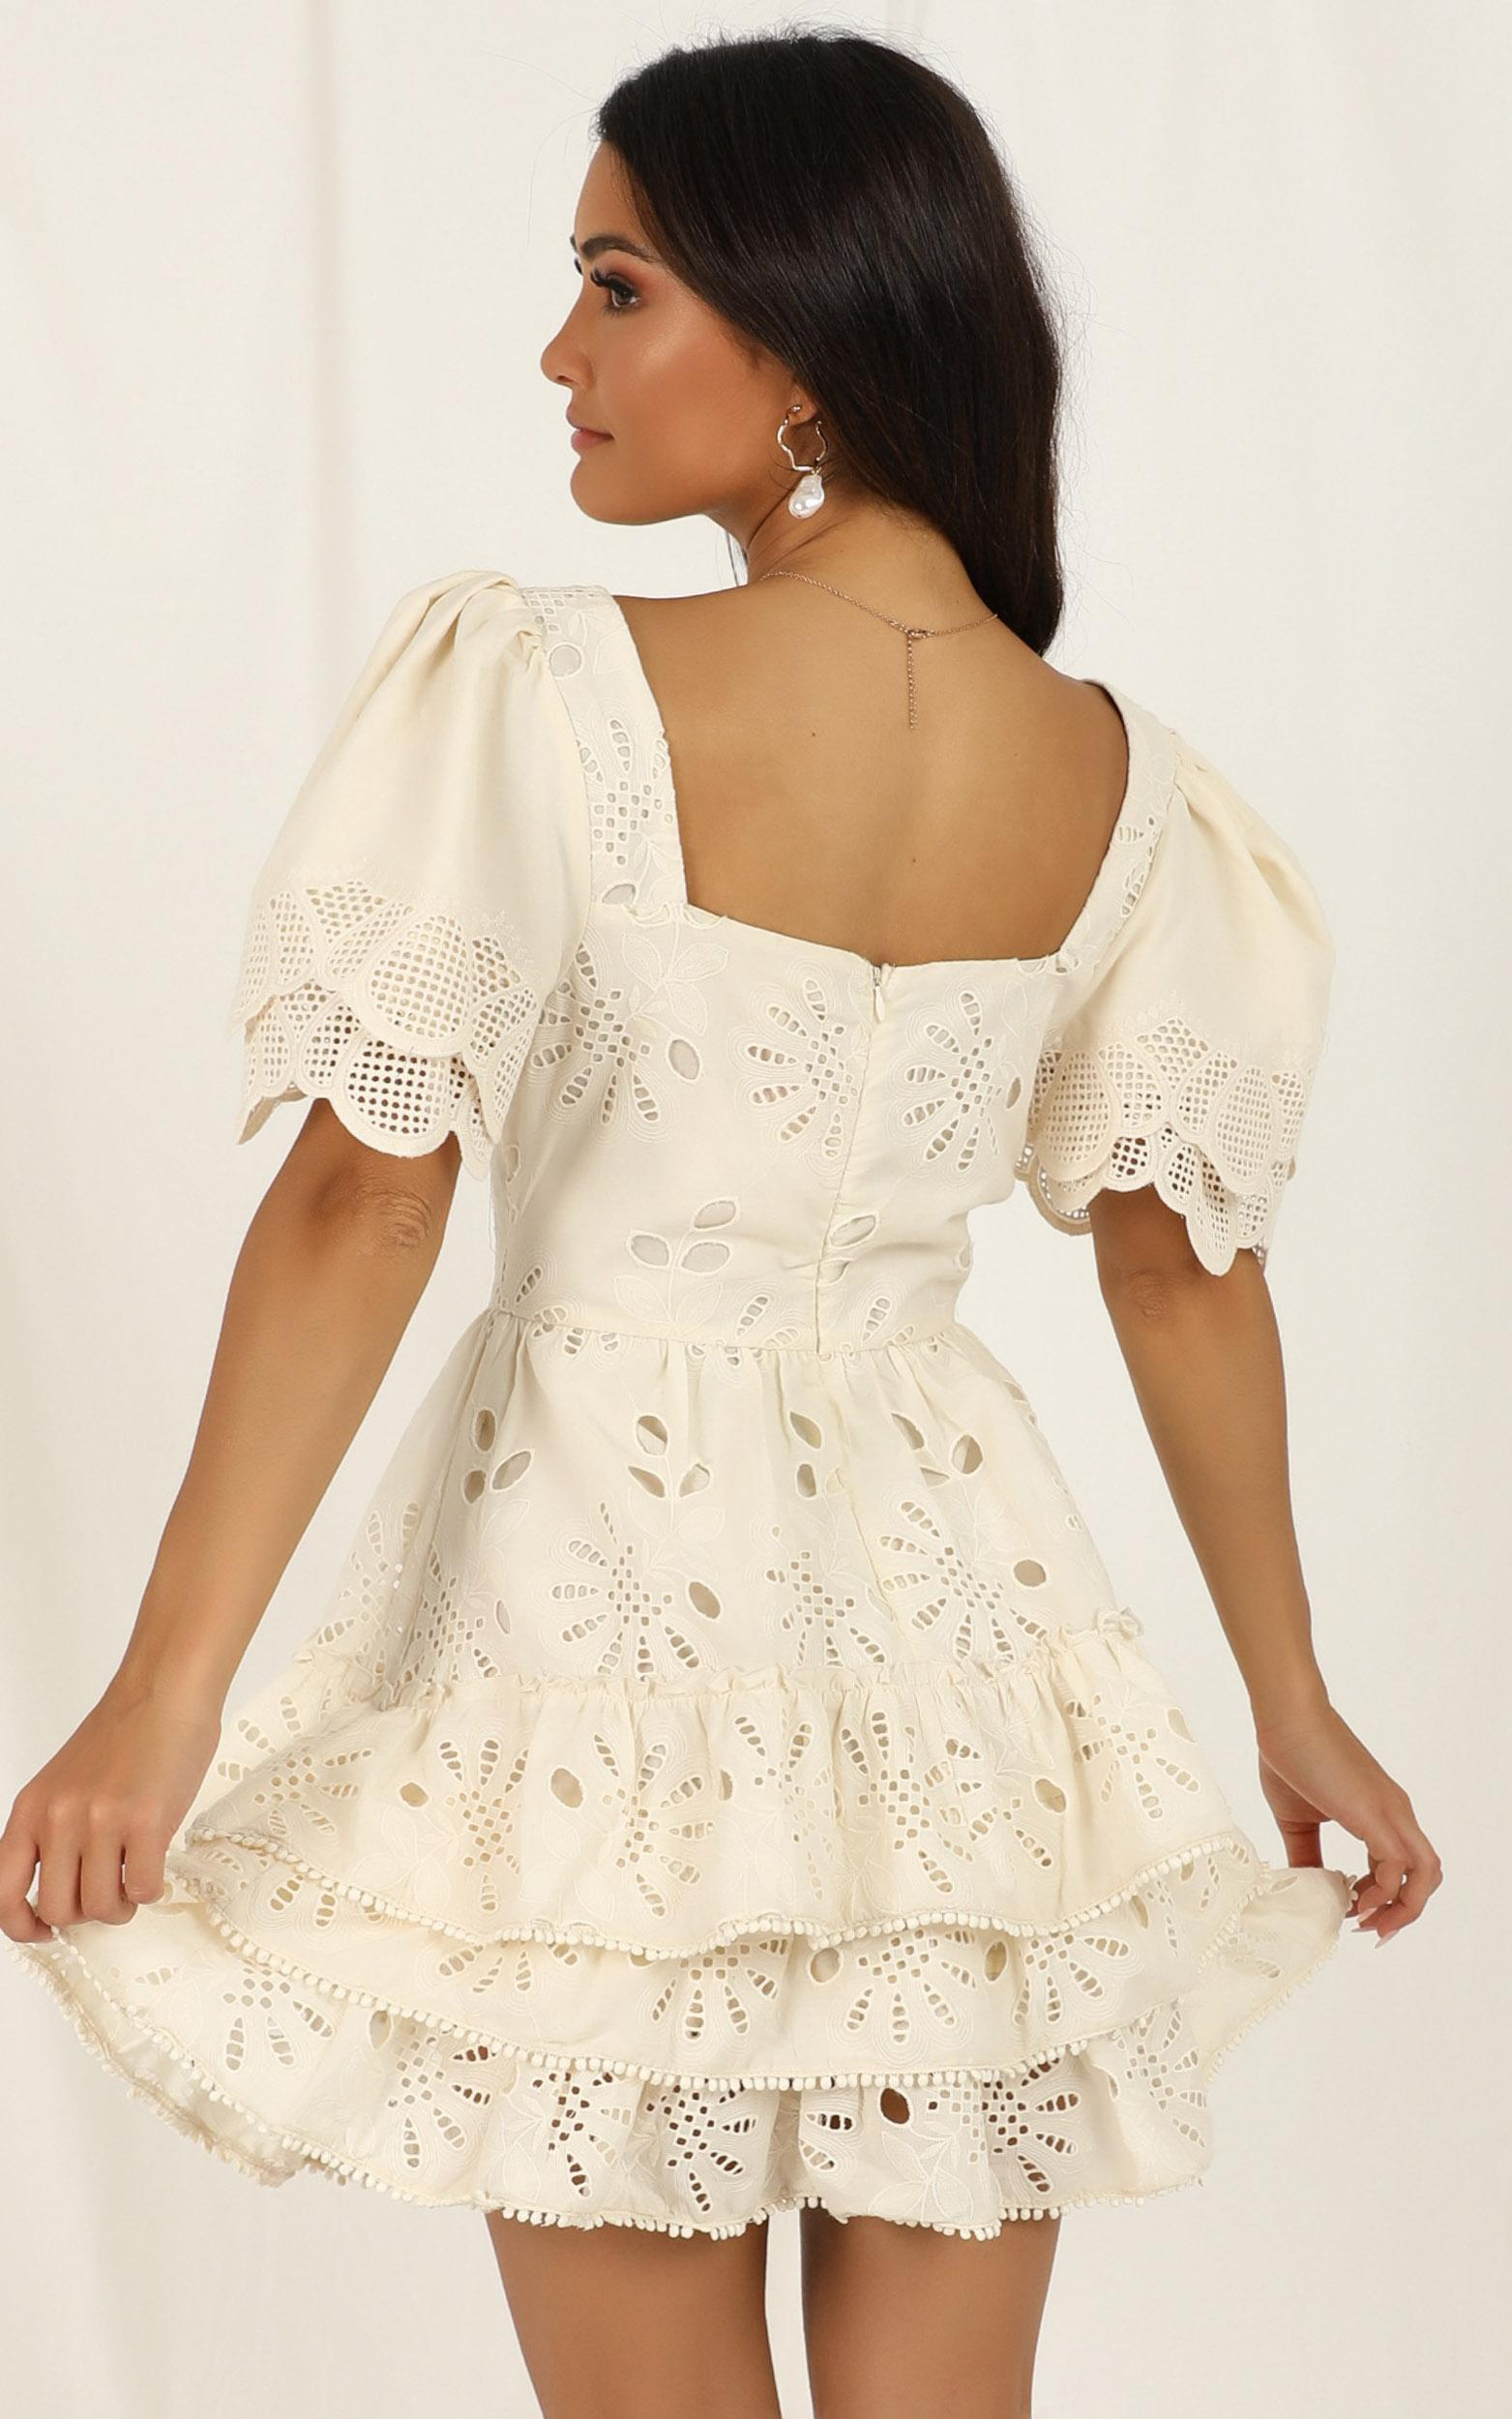 Back To The Island dress in cream lace - 12 (L), Cream, hi-res image number null